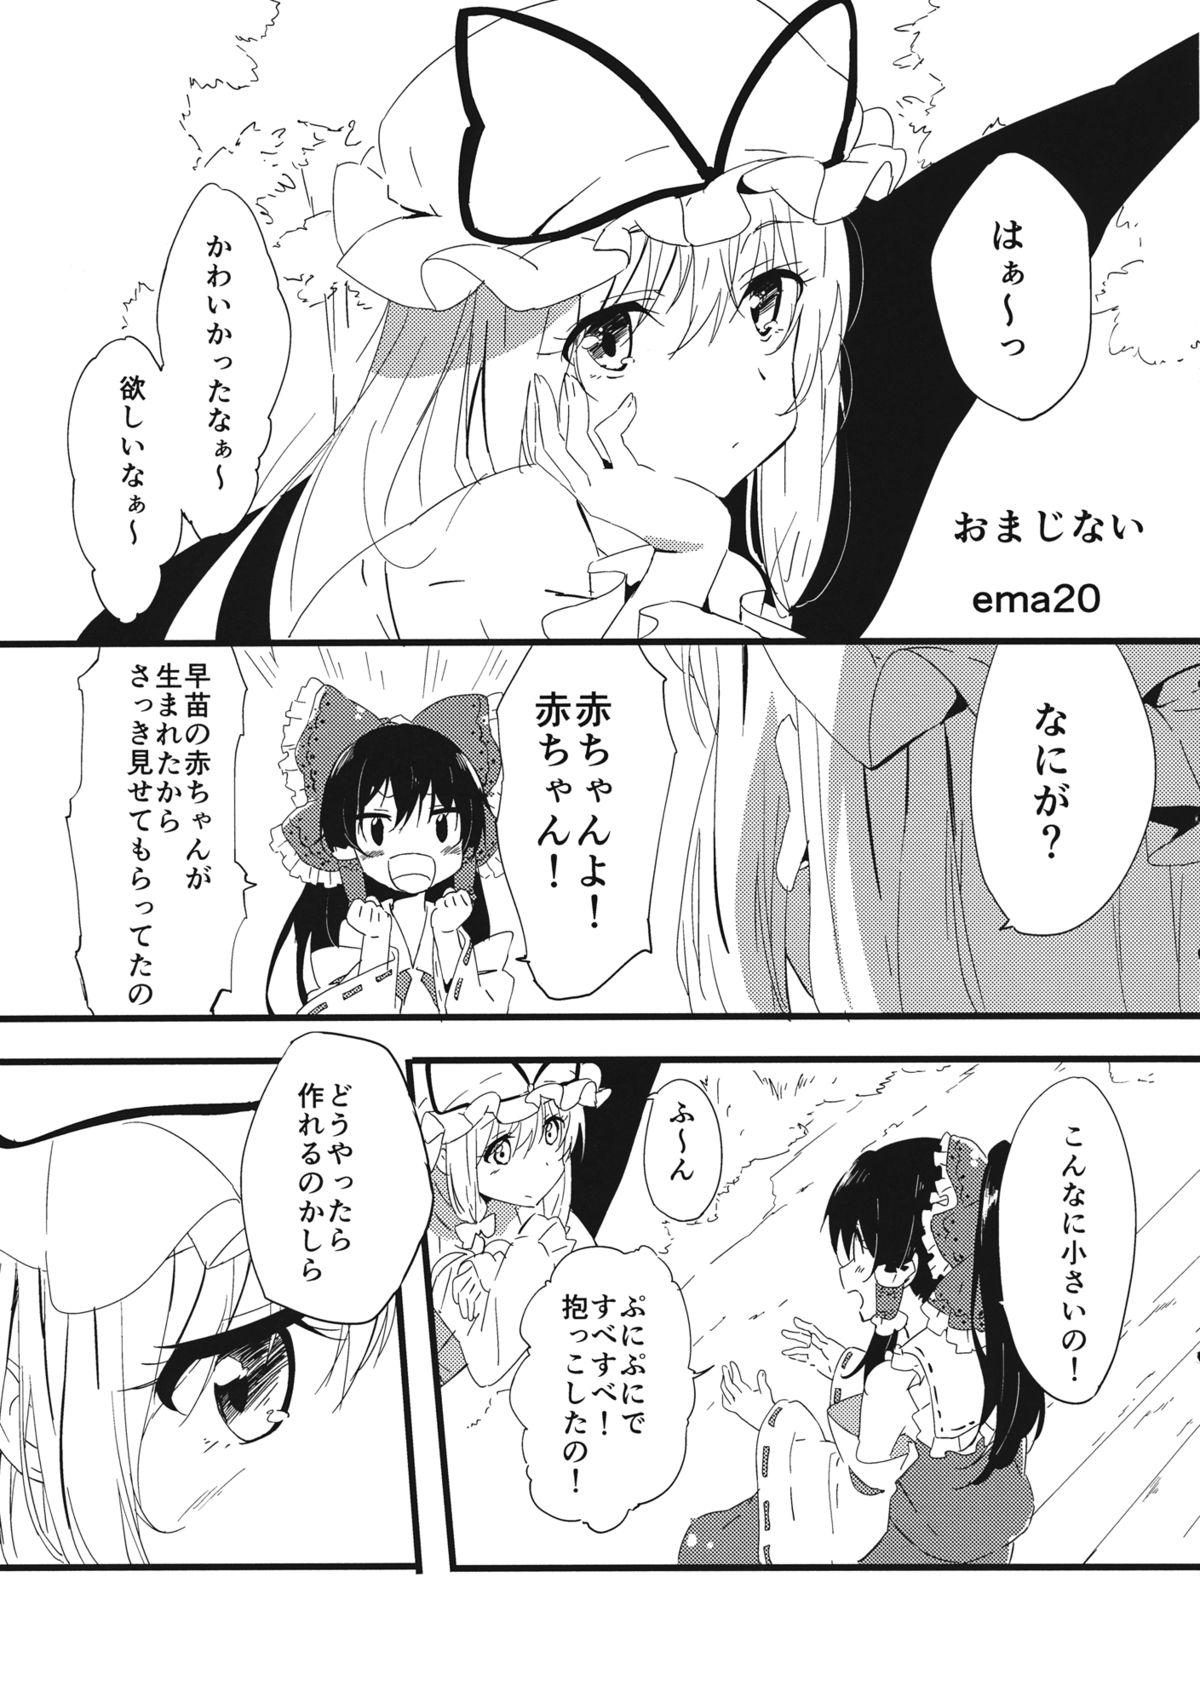 Touhou Muchi Shichu Goudou - Toho joint magazine sex in the ignorant situations 2